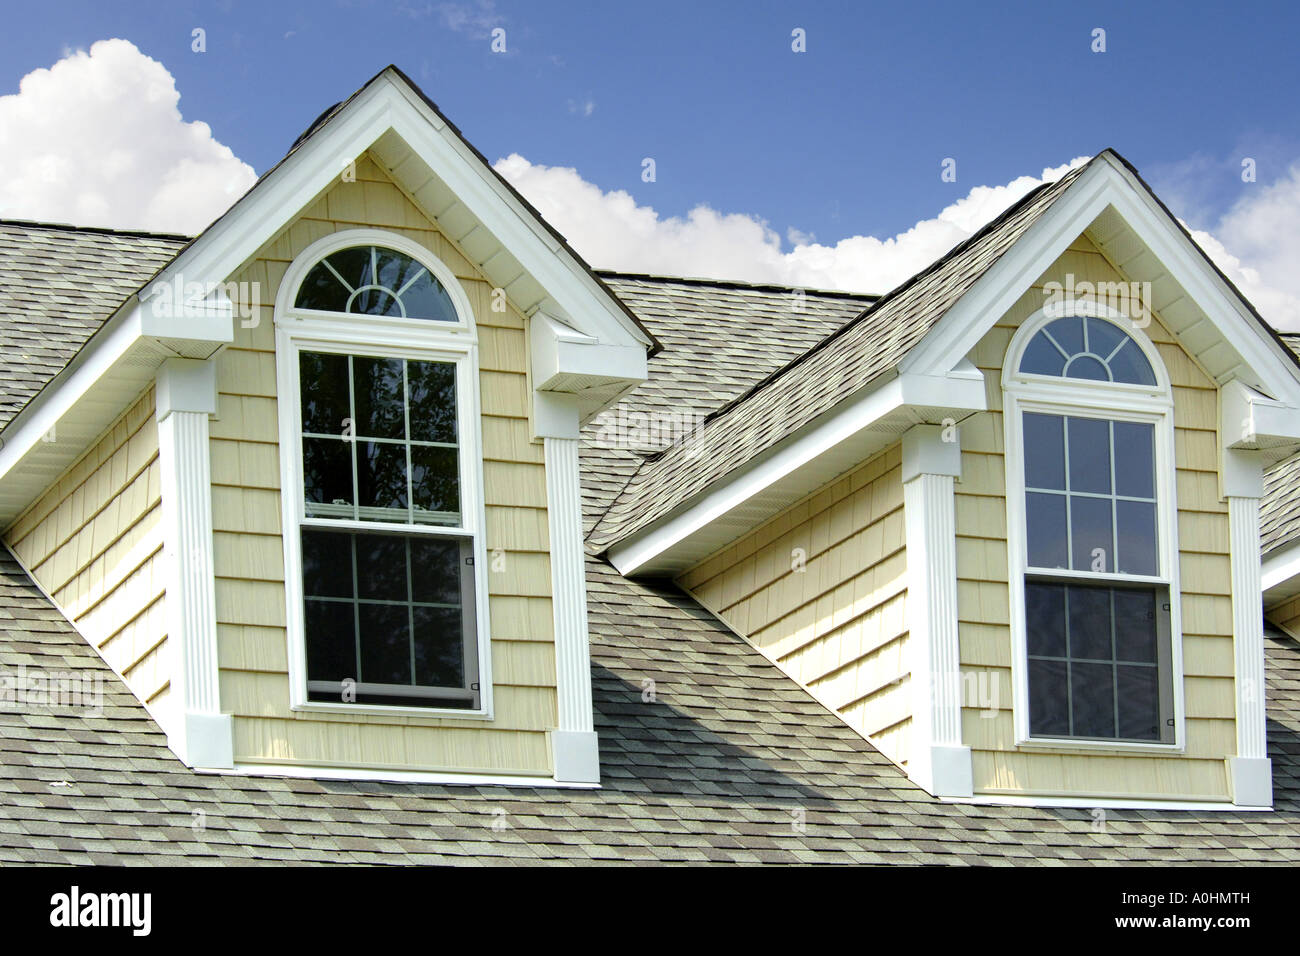 Attic windows looking outwards from the roof of a house stock photo royalty free image - Houses attic families children ...